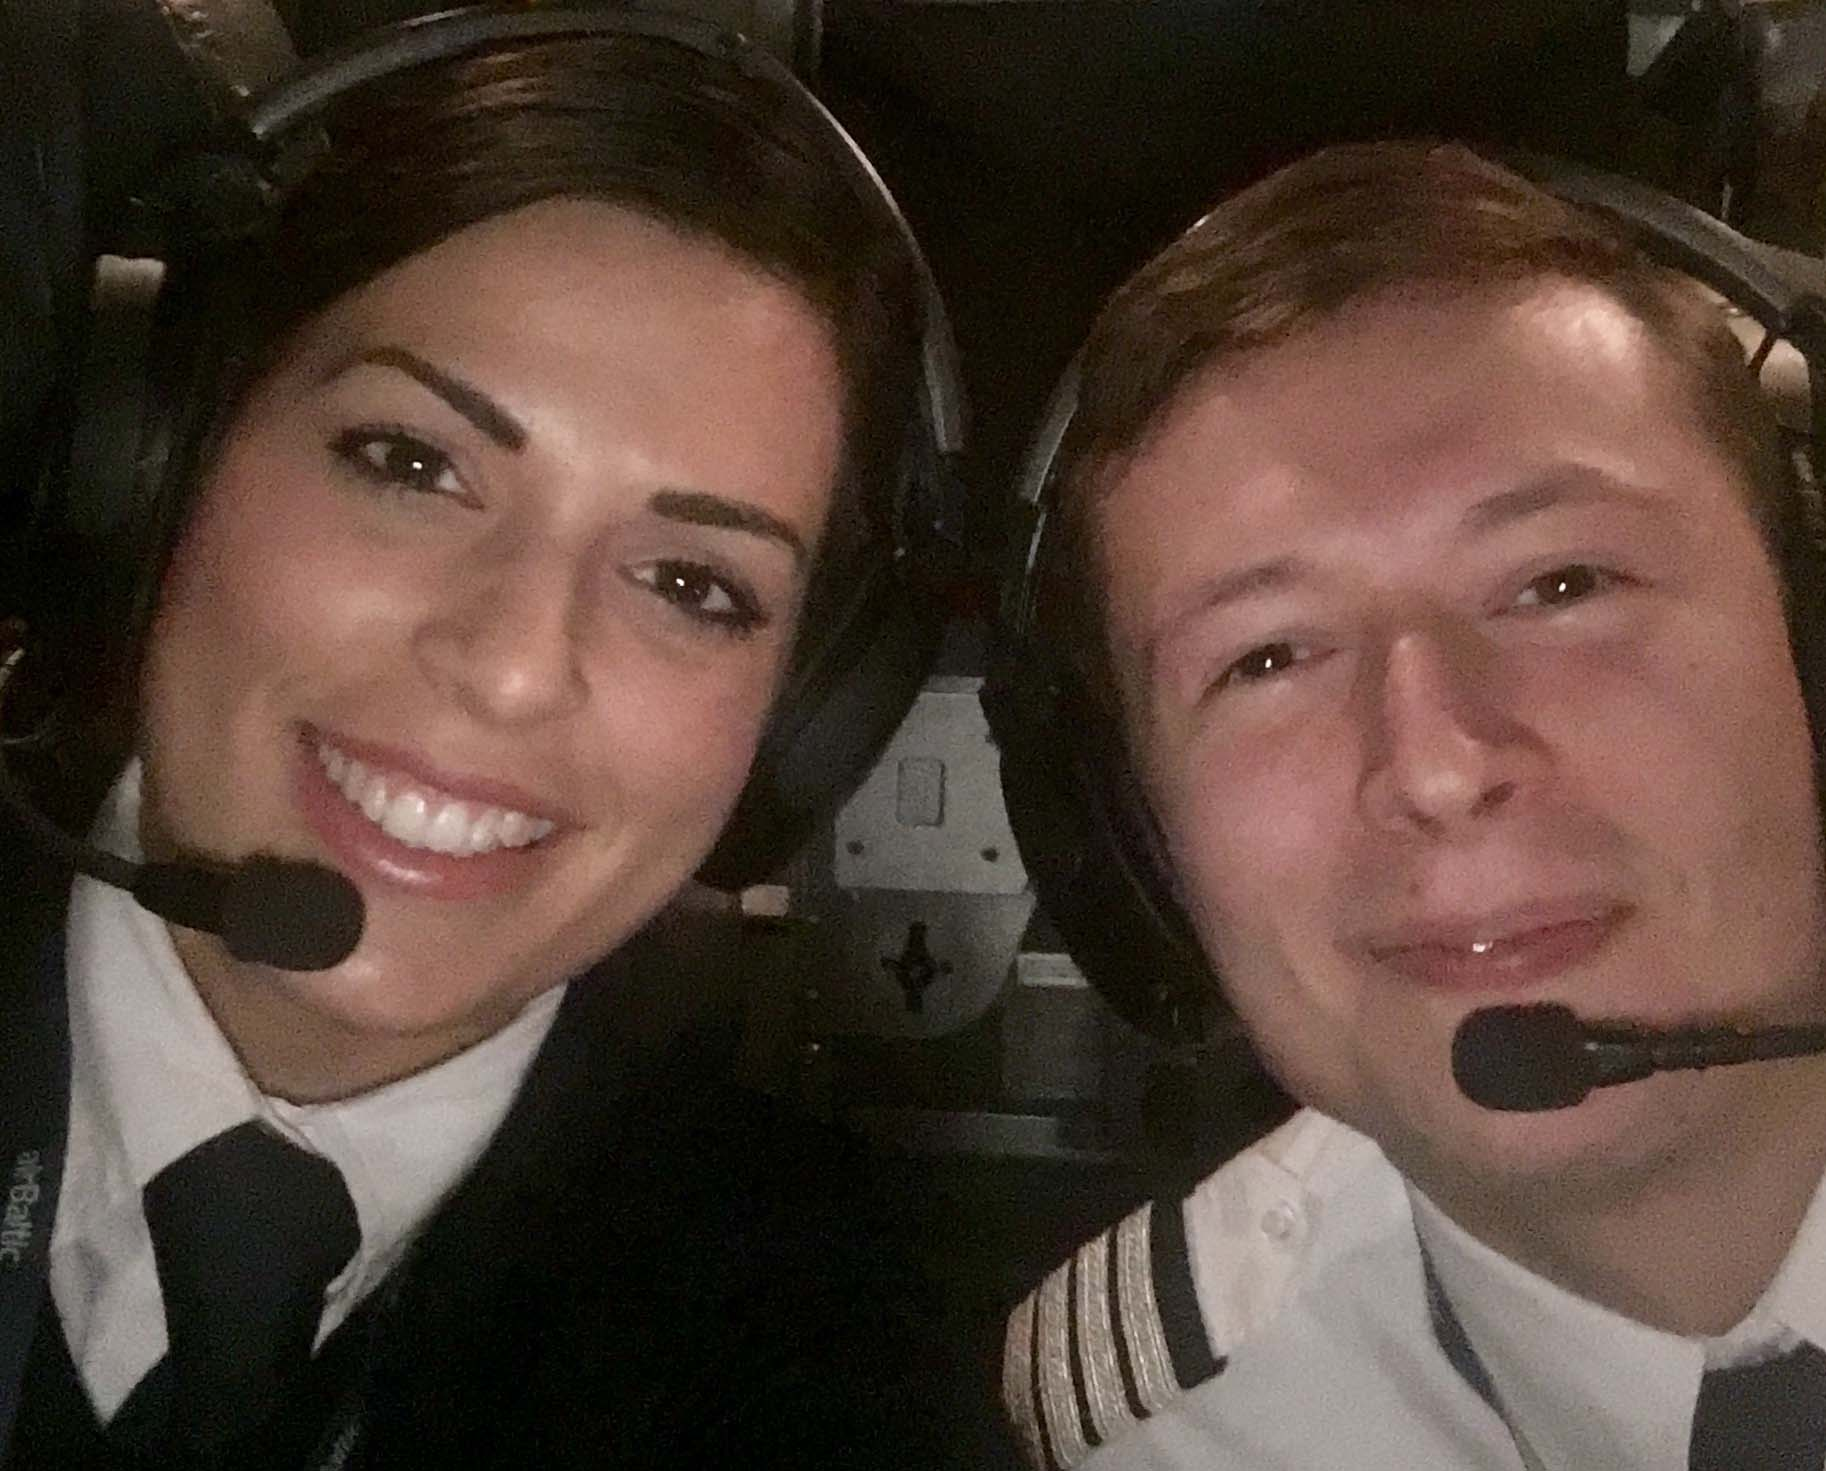 Ana-Female-Pilot-FTA-Group-Male-pilot-photo-5